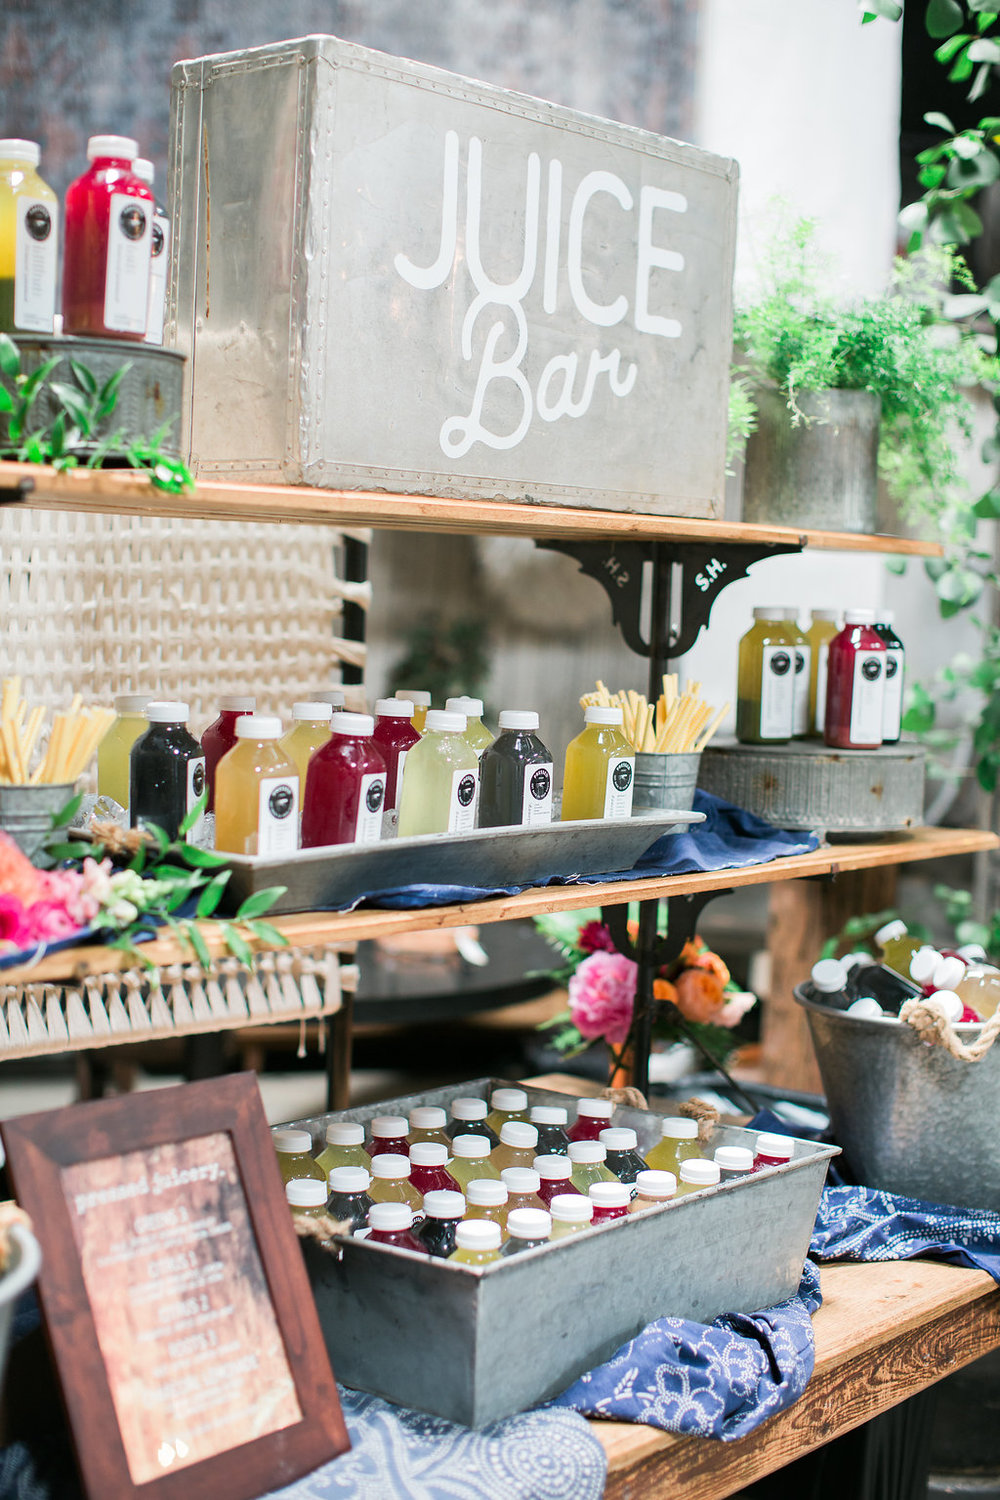 -022 Pressed Juice Display 5.jpg